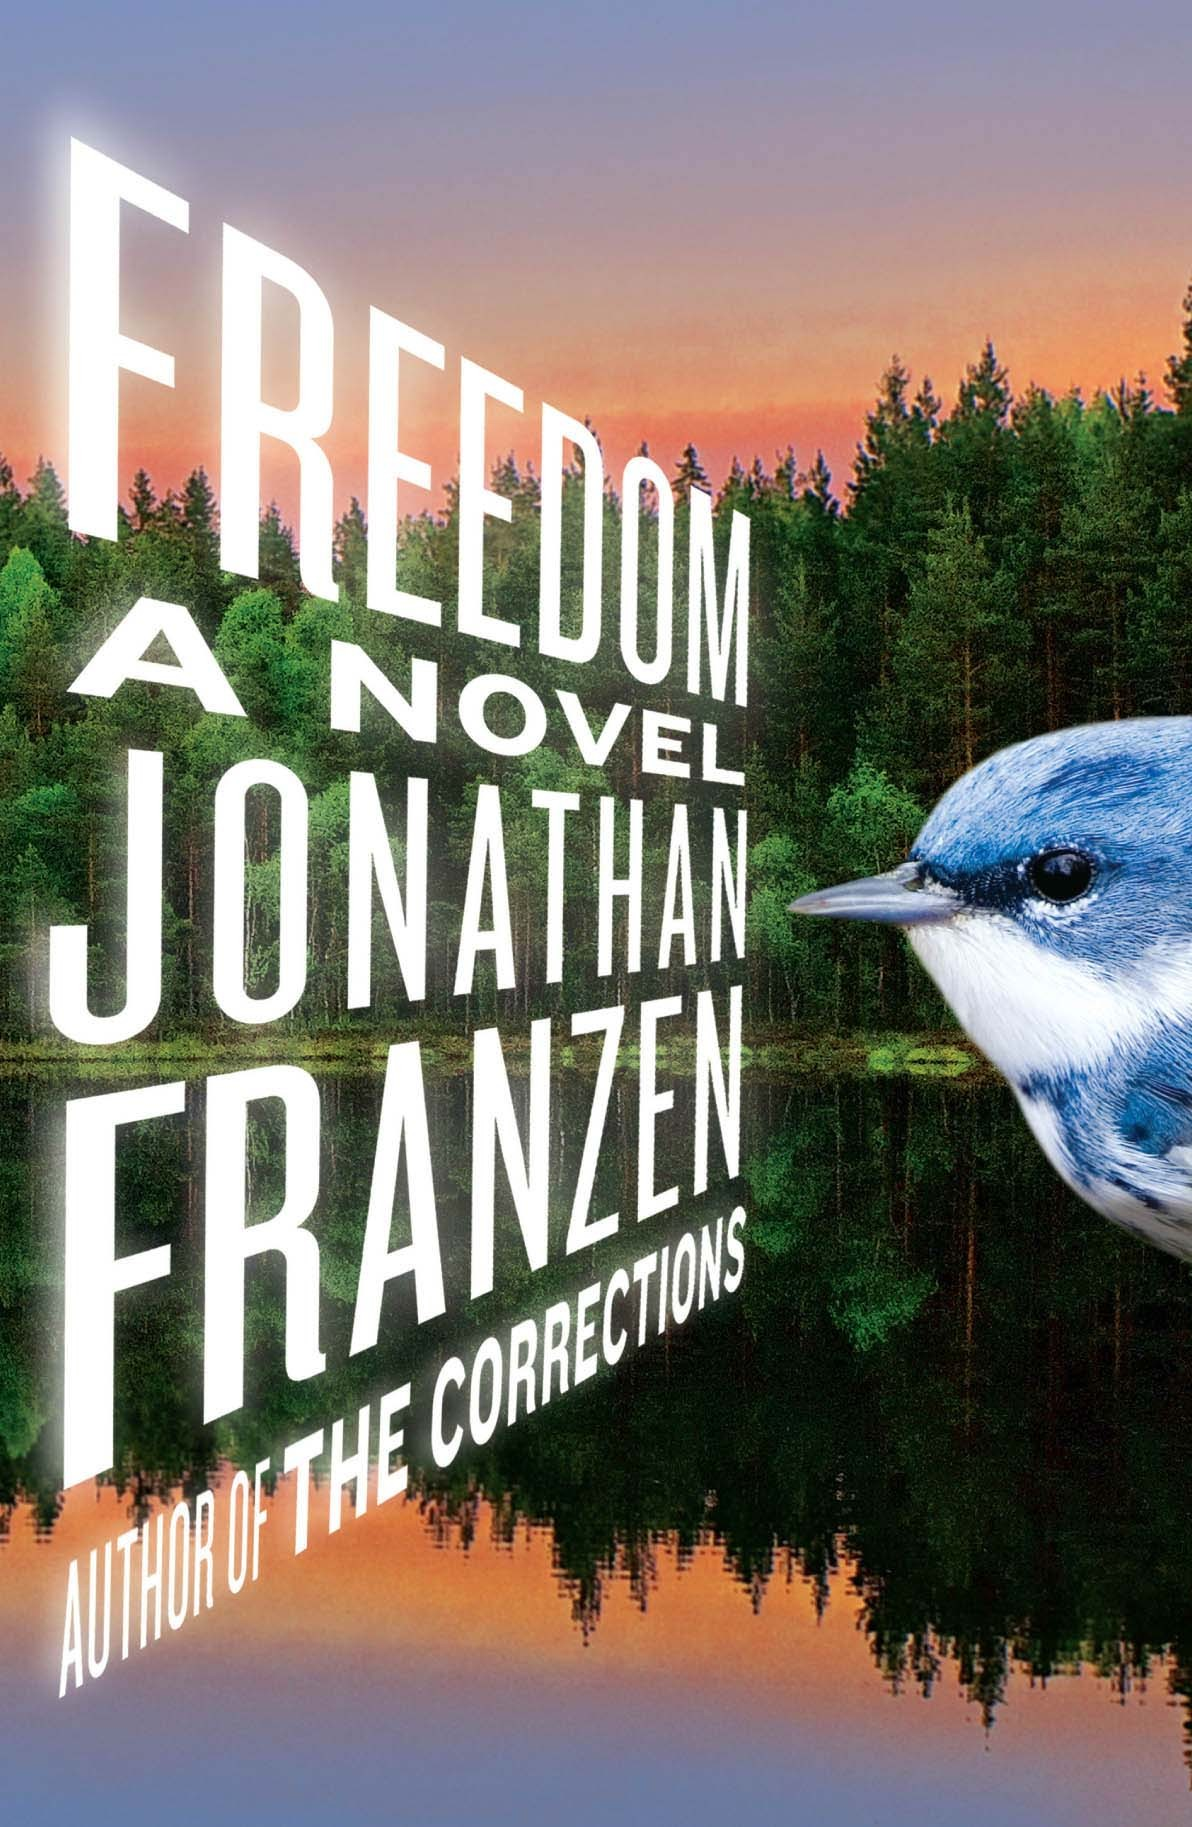 Ever wonder how those Finnish trees ended up on the cover of Freedom? Talking Covers has you, um, covered.